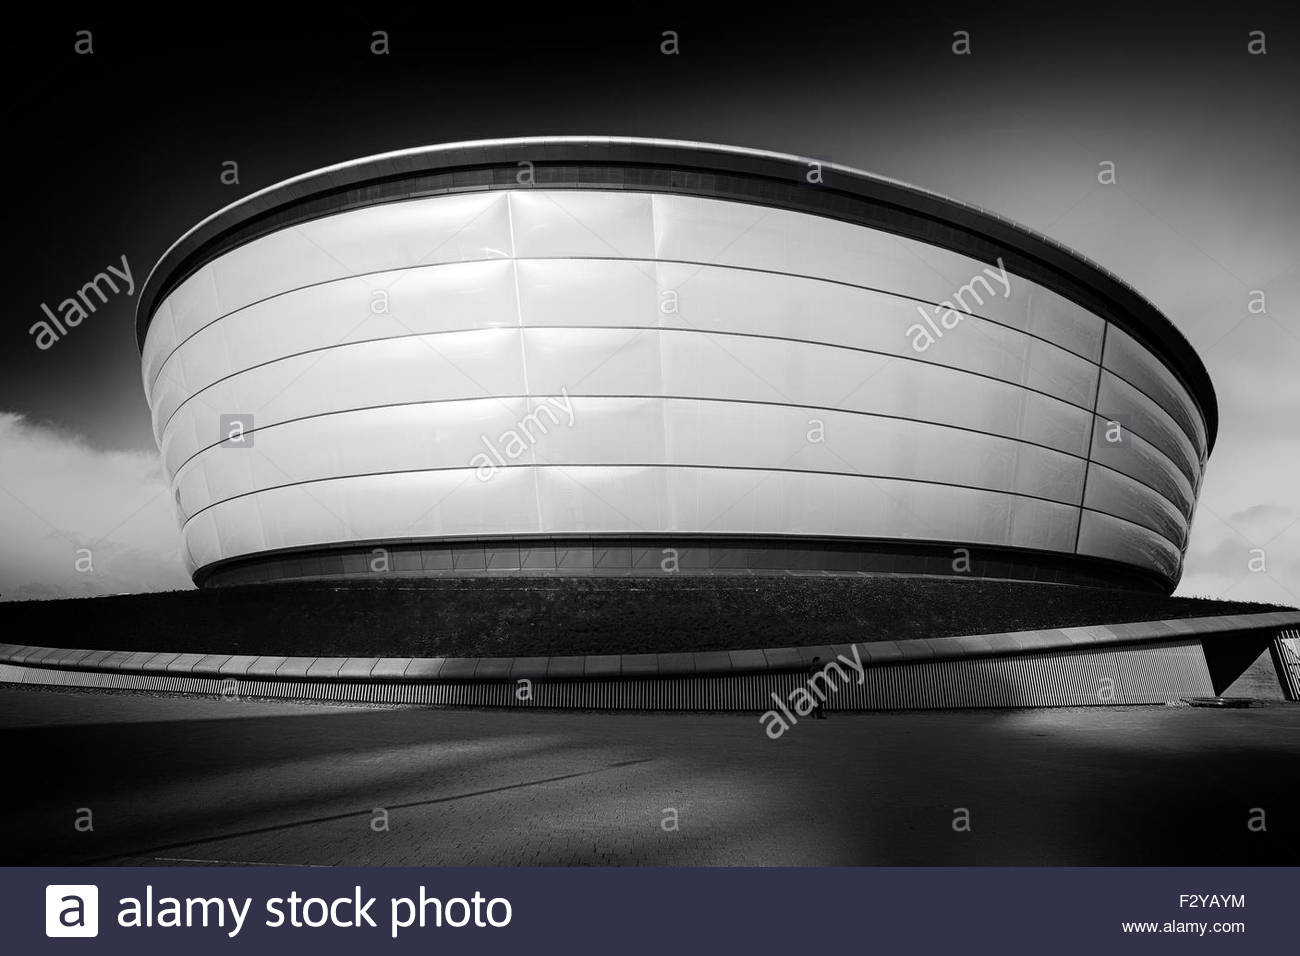 The Hydro Arena in Glasgow photographed in black and white. - Stock Image